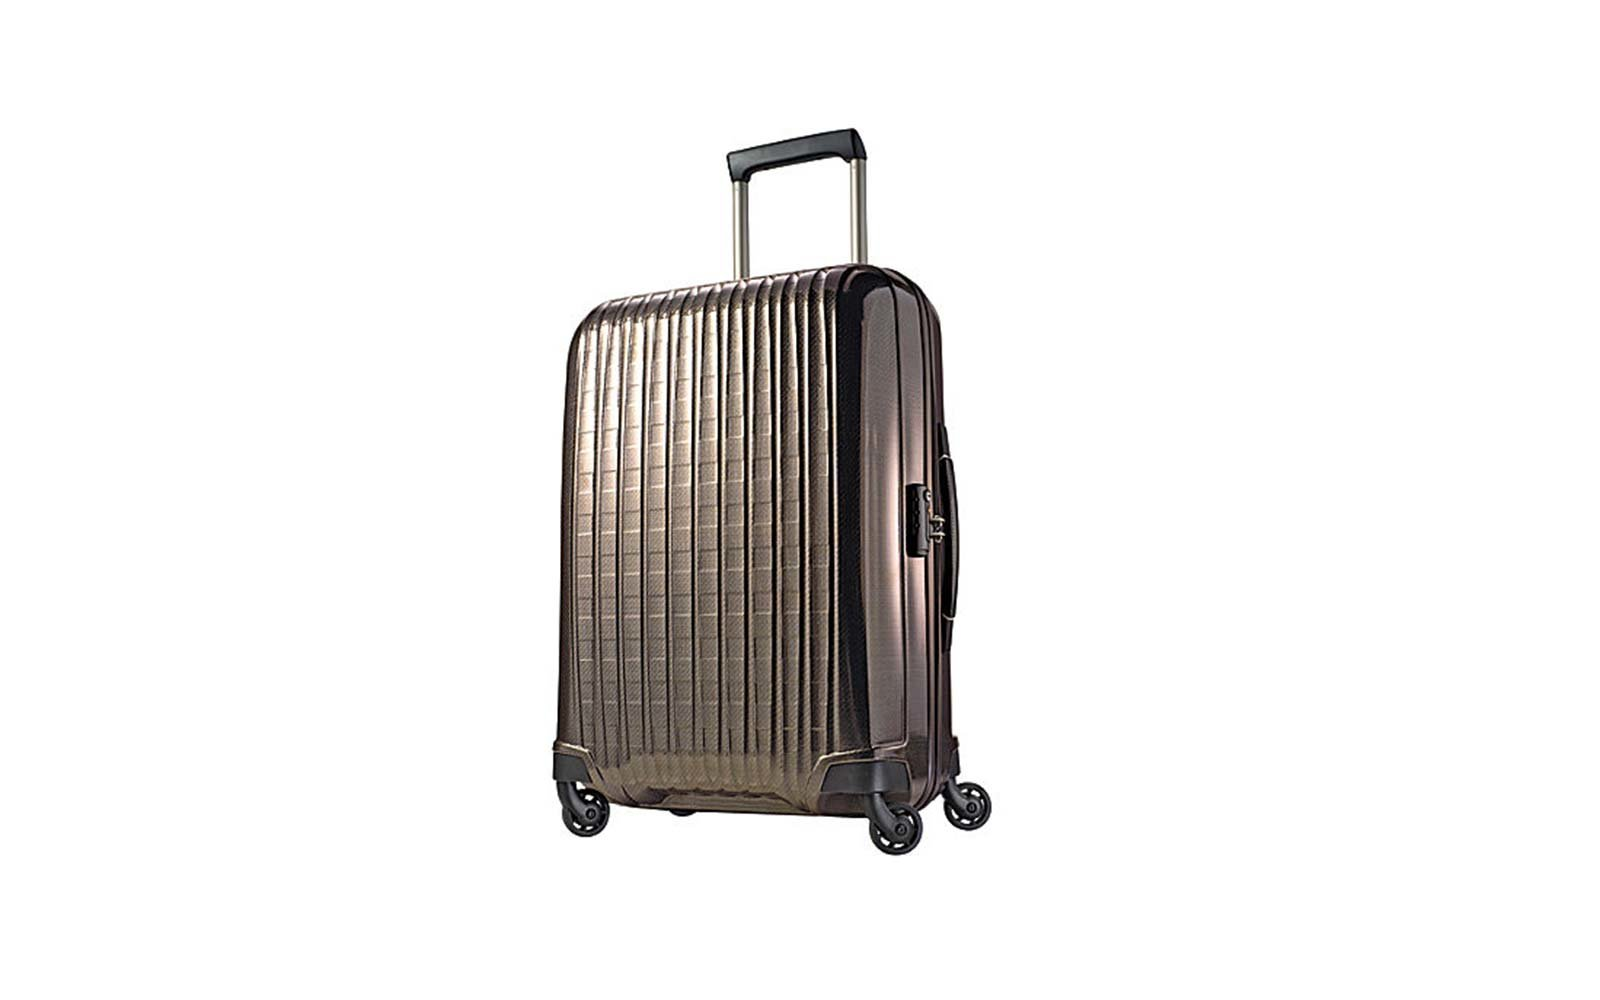 Hartmann Luggage Innovaire Journey Spinner Luggage